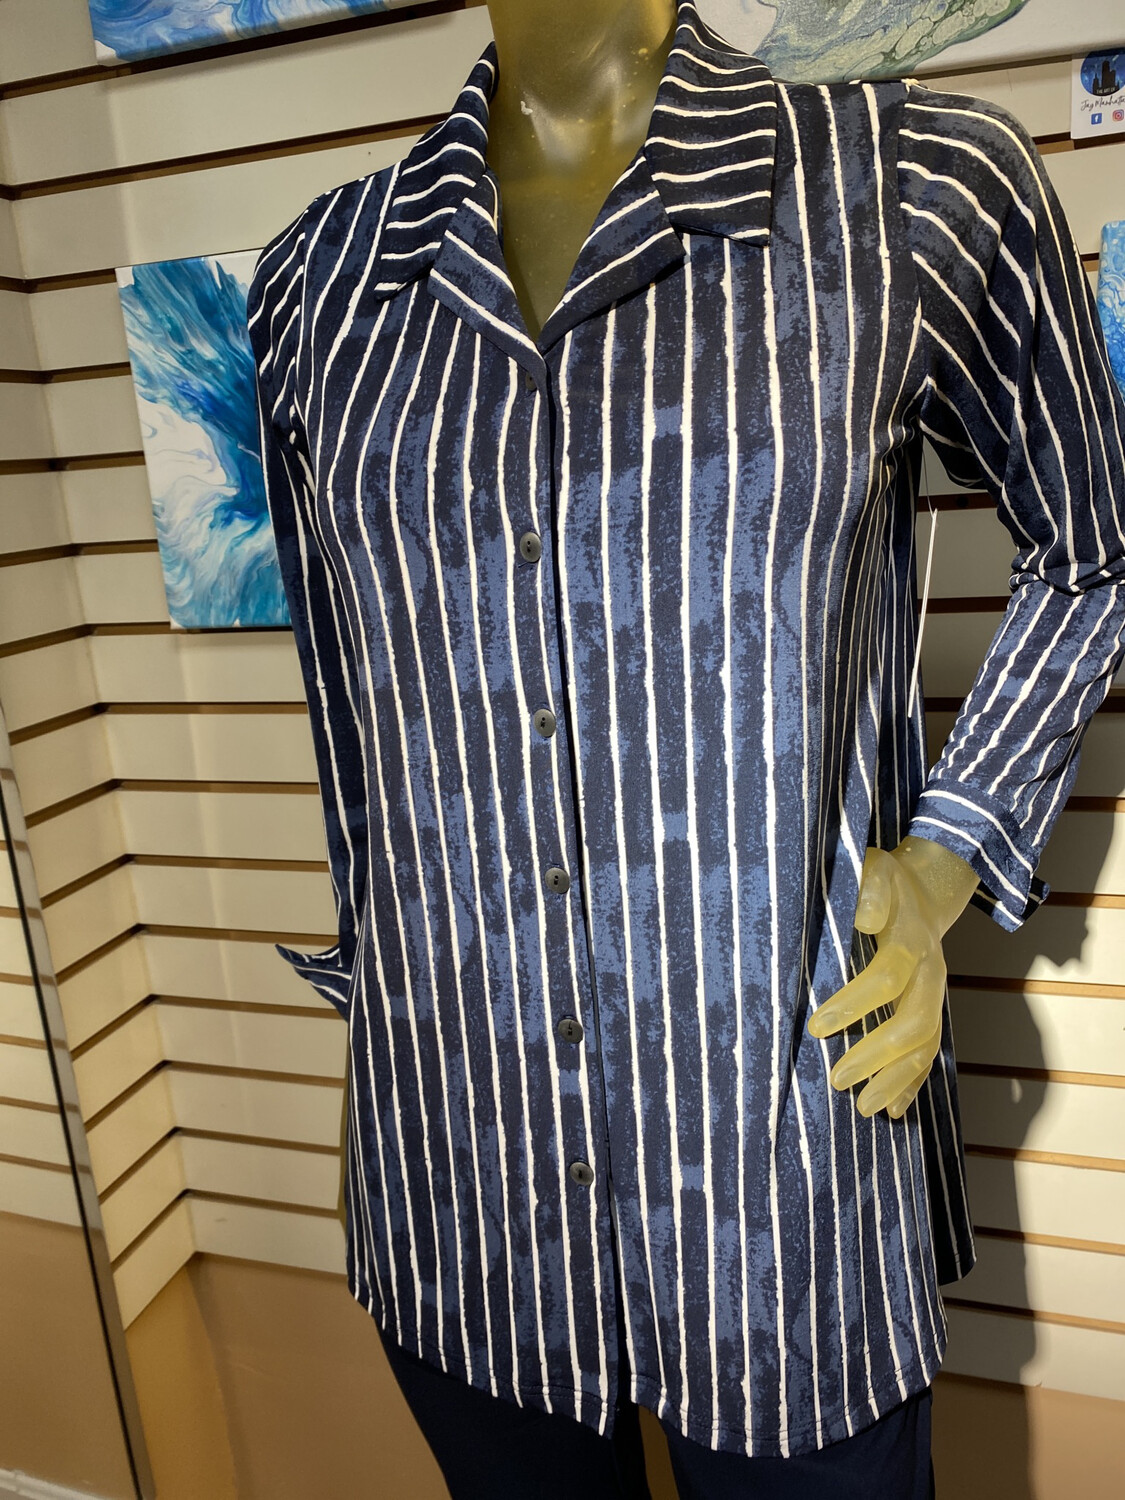 Major Deal Sympli Summer 2020 Chic Shirt Pattern. 1 In Size 10 A steal!